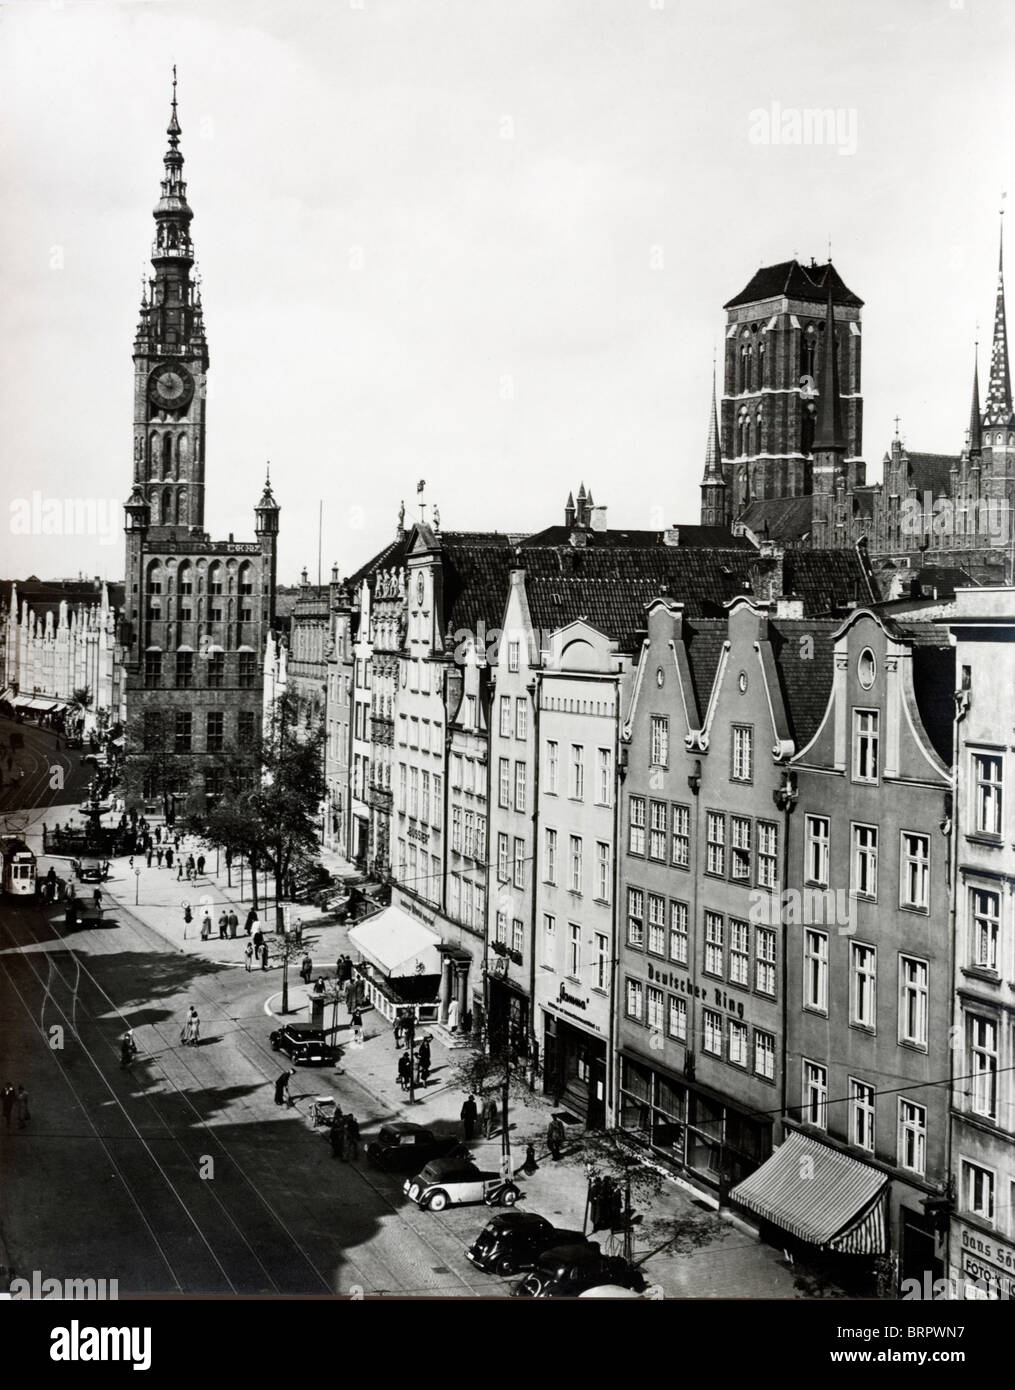 The Centre Of German Speaking City Danzig In Mid 1930s